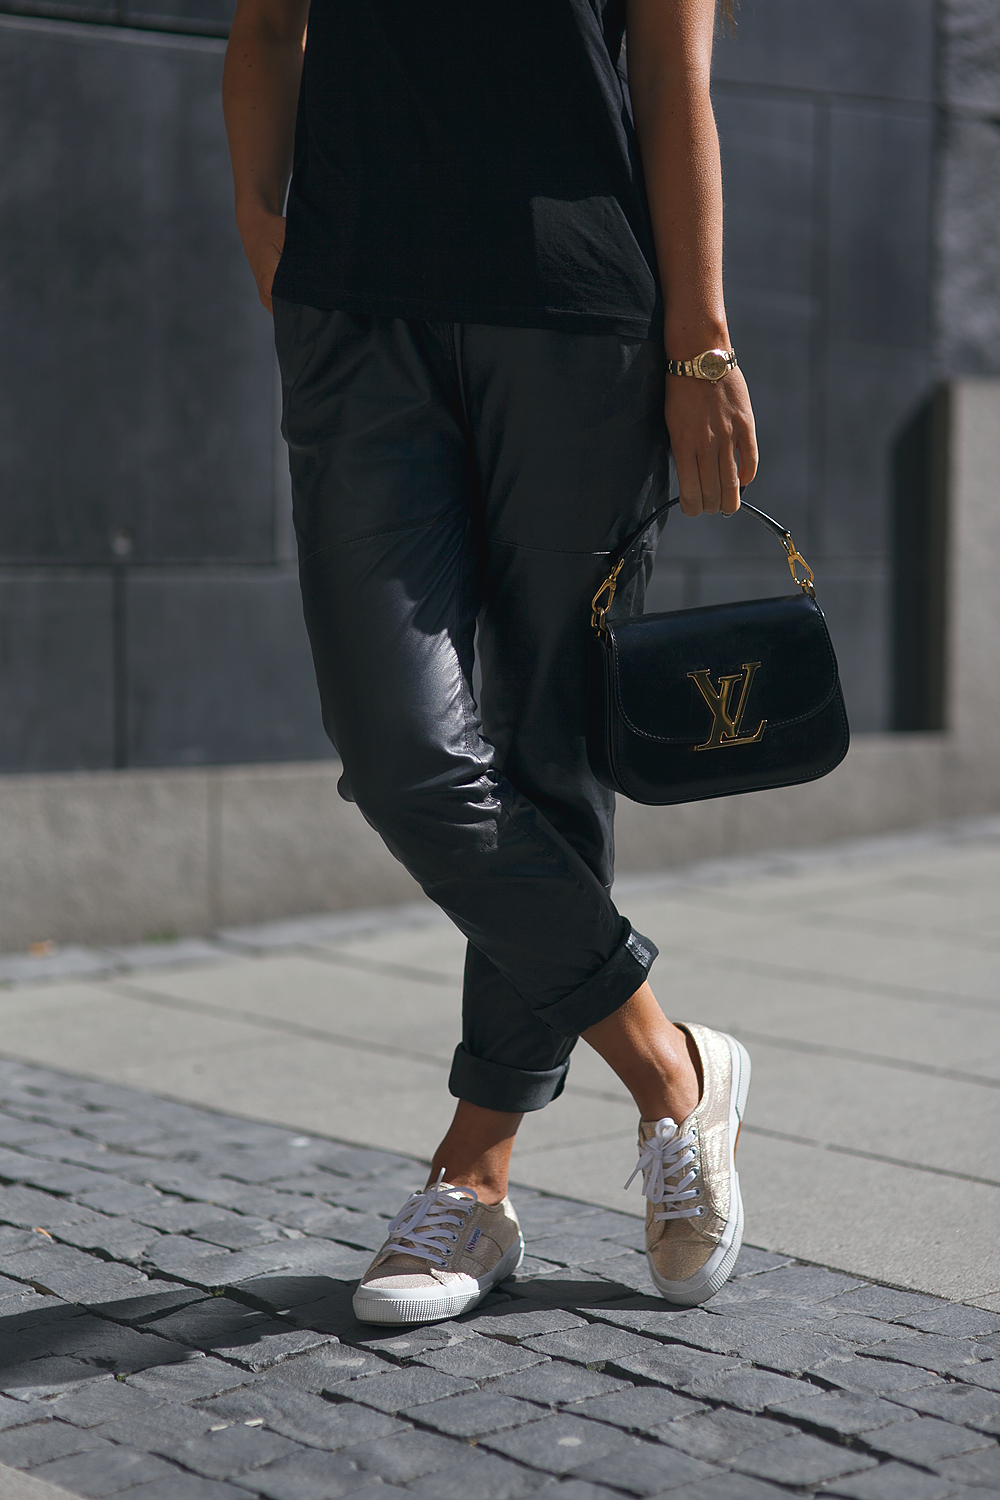 Via Just The Design: Johanna Olsson is wearing a pair of black leather Designers Remix pants with a Zara top, a Louis Vuitton clutch bag and Suprega pumps